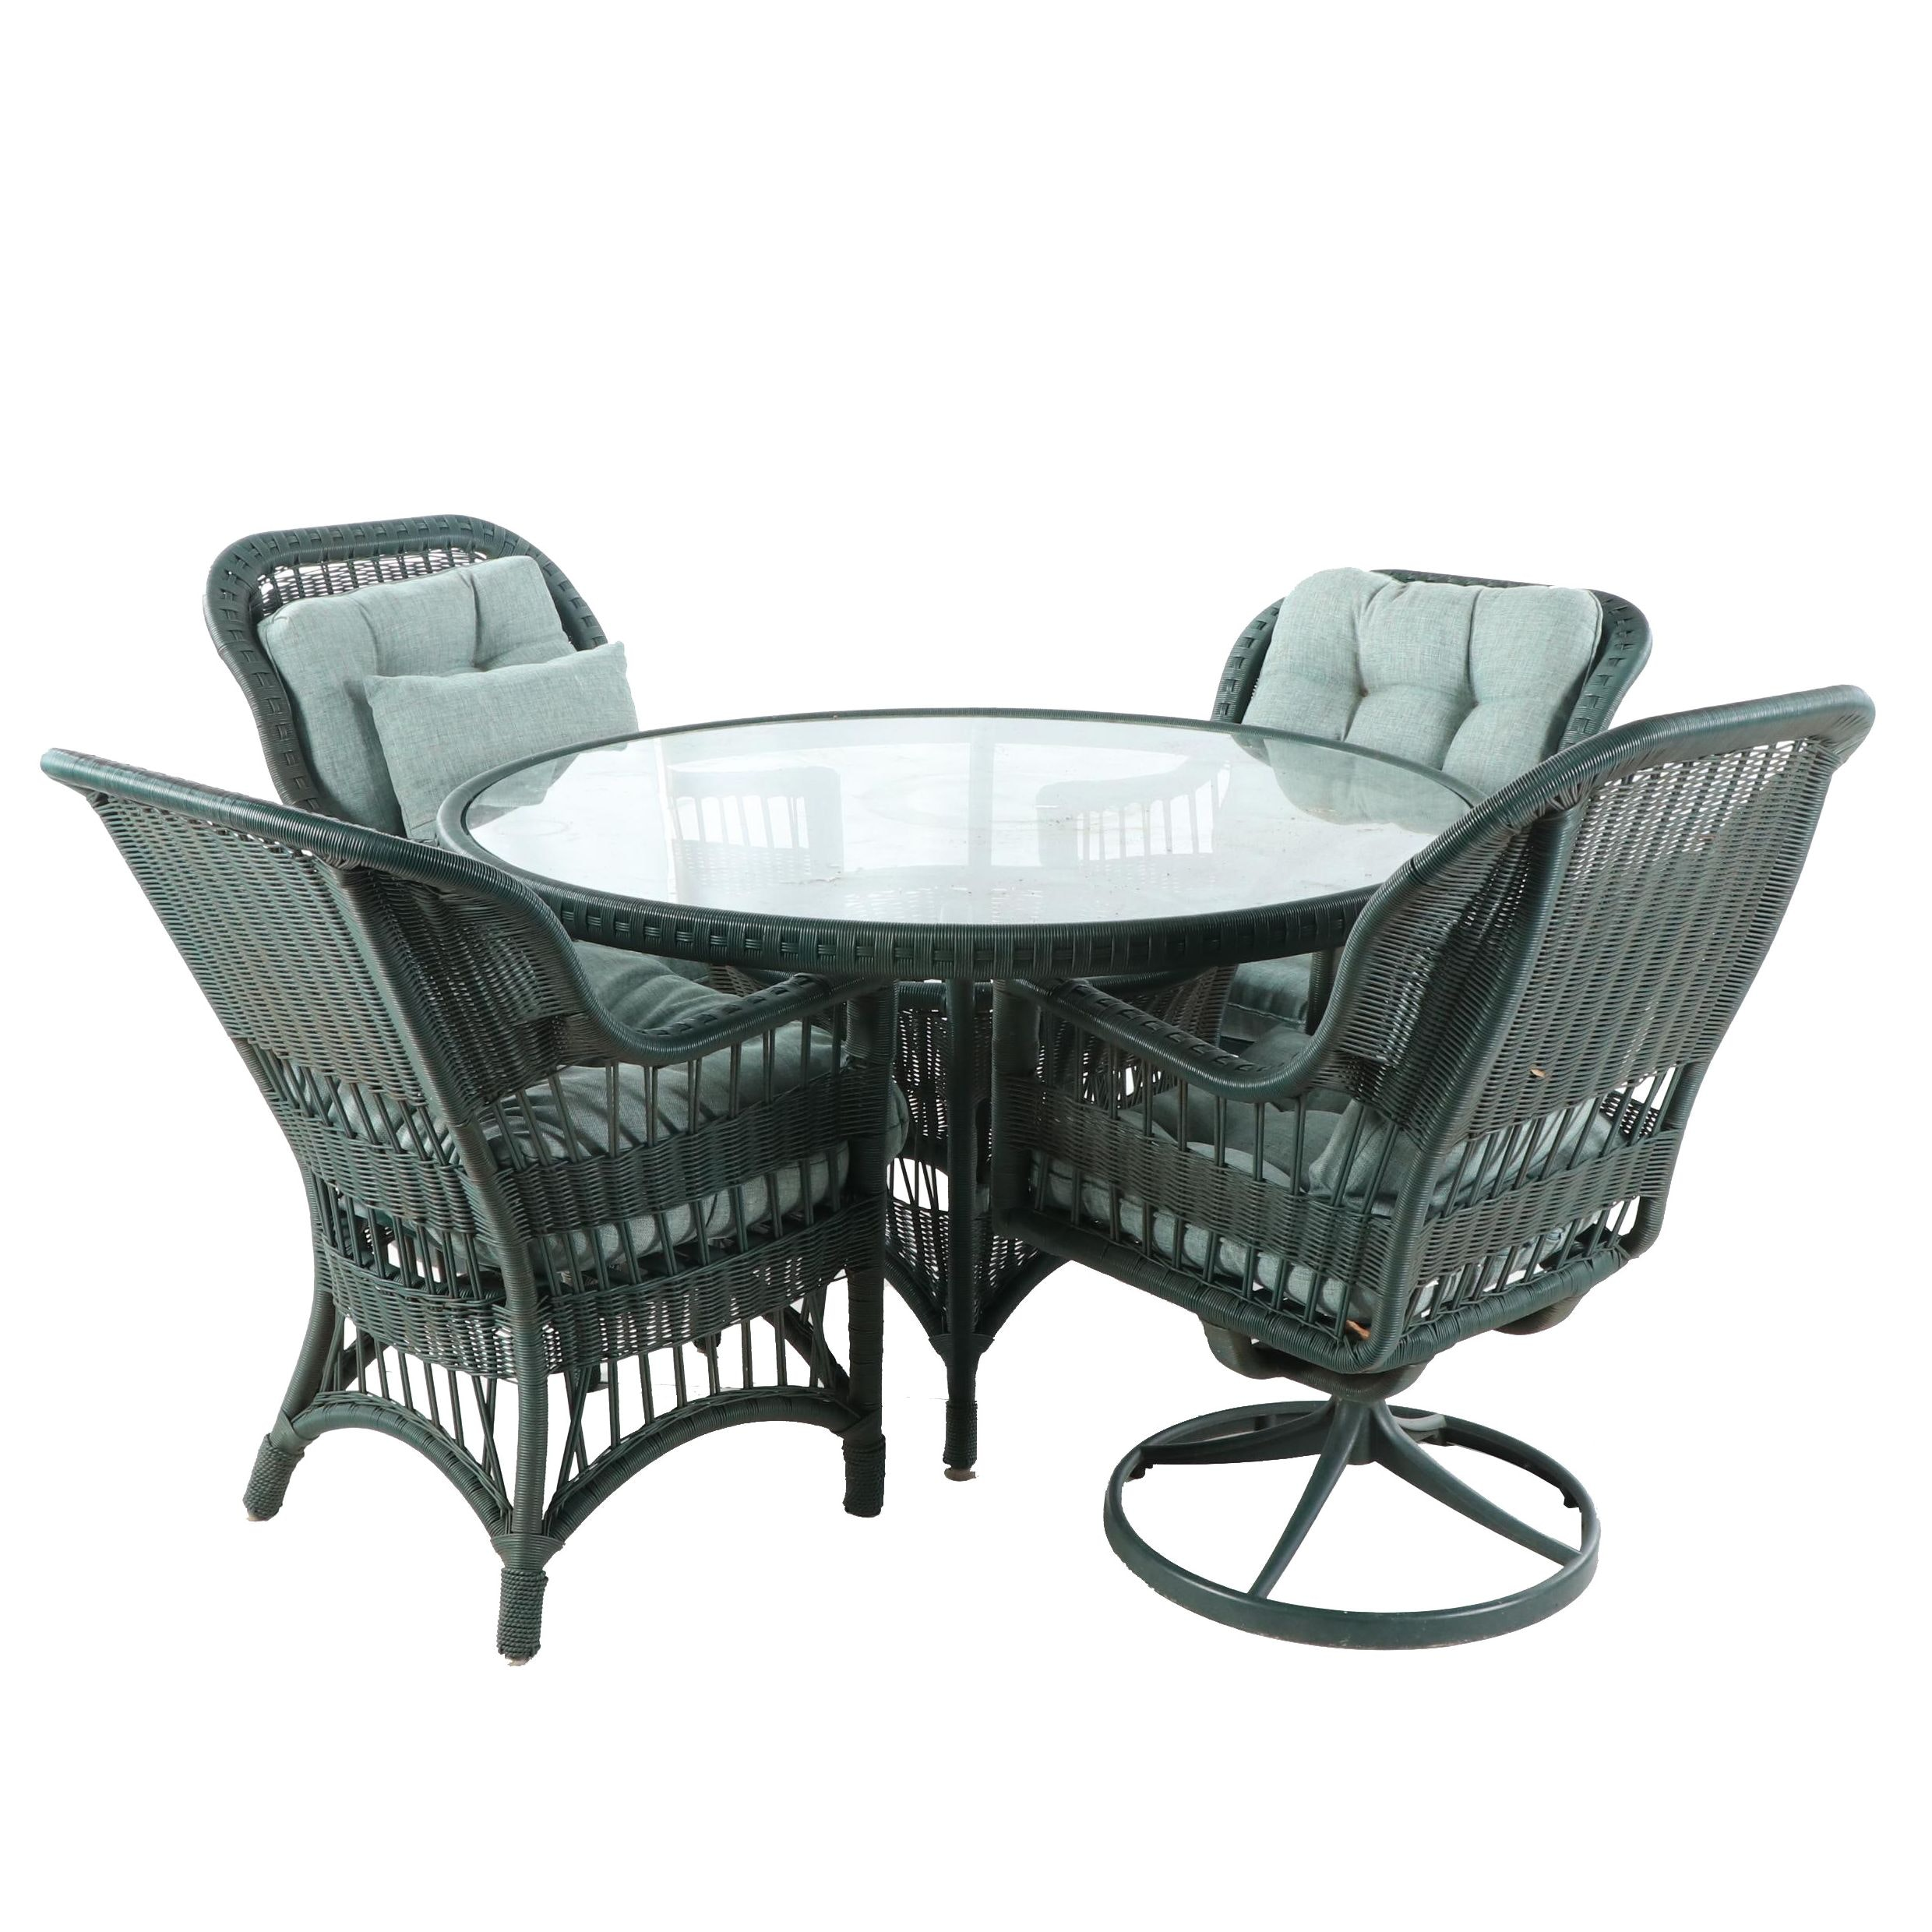 Woven Plastic and Metal Patio Dining Table and Armchairs Set, 21st Century